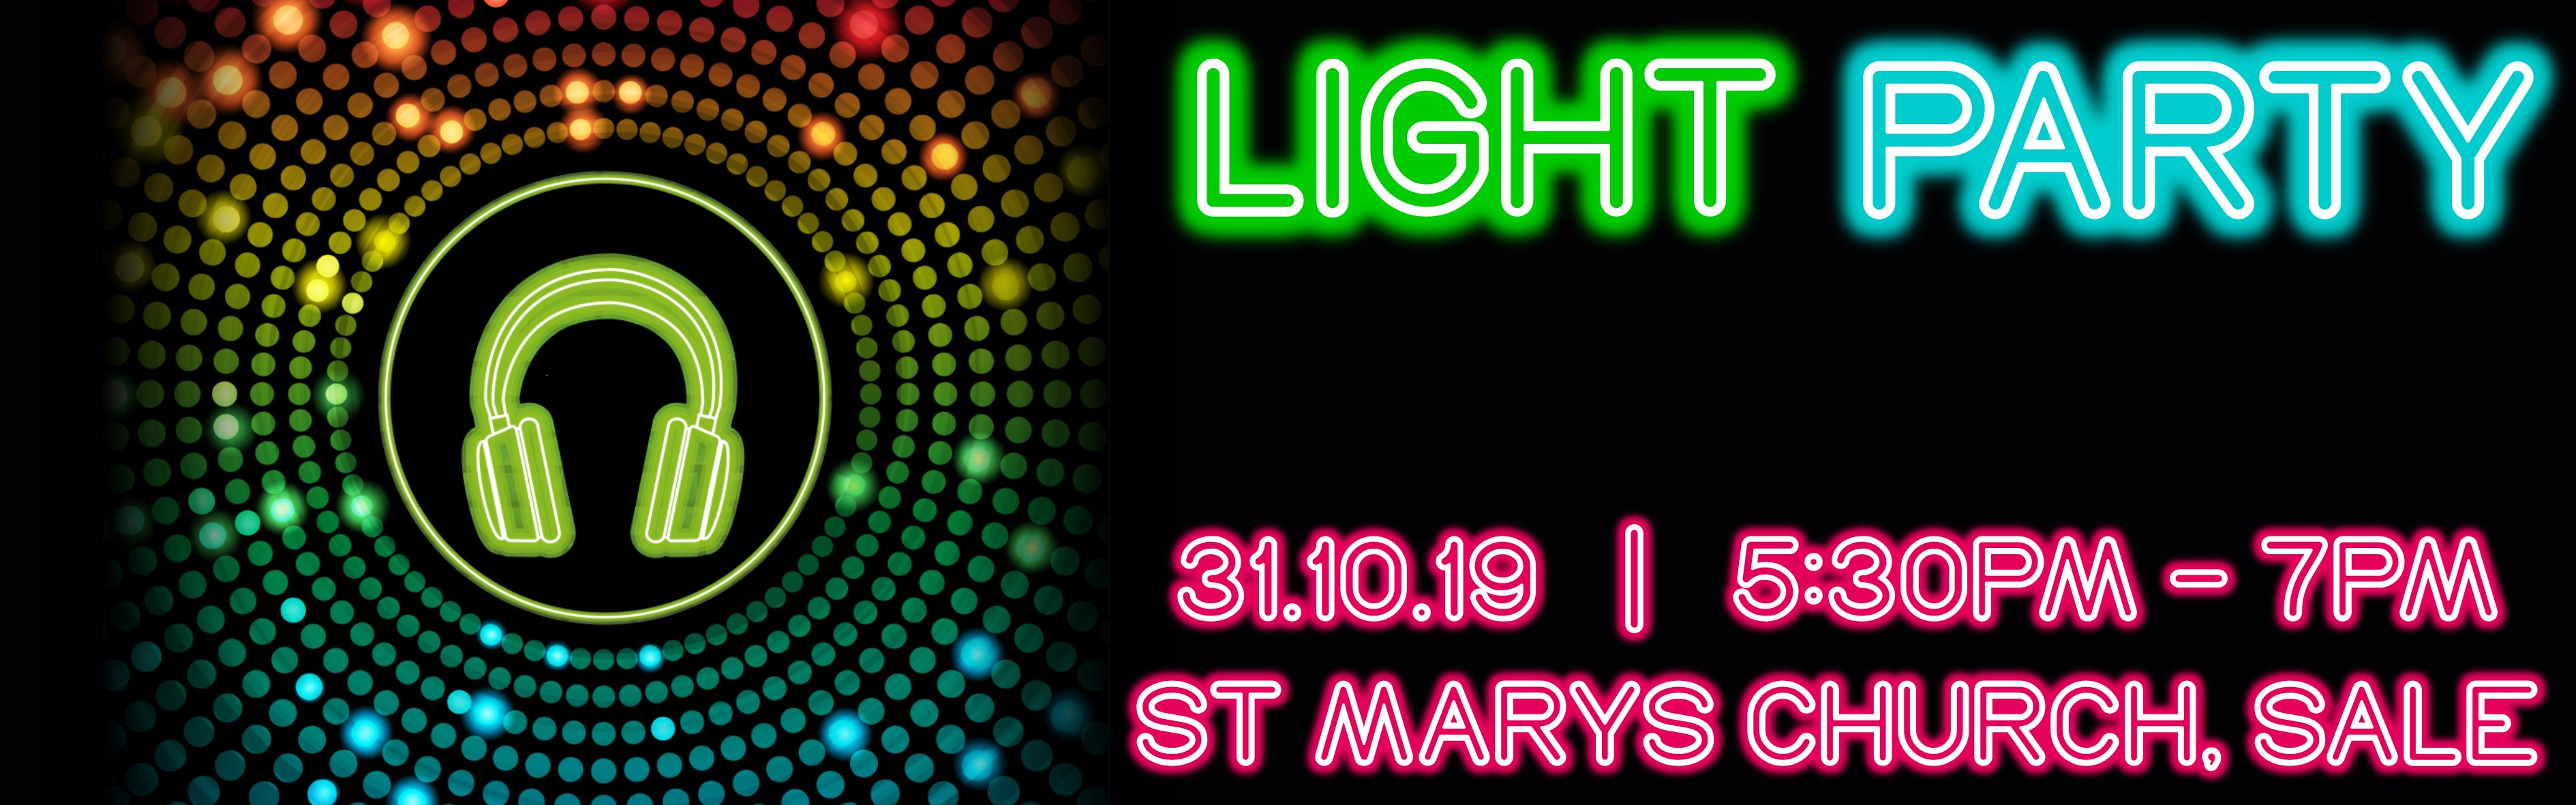 2019 Light Party Web Banner